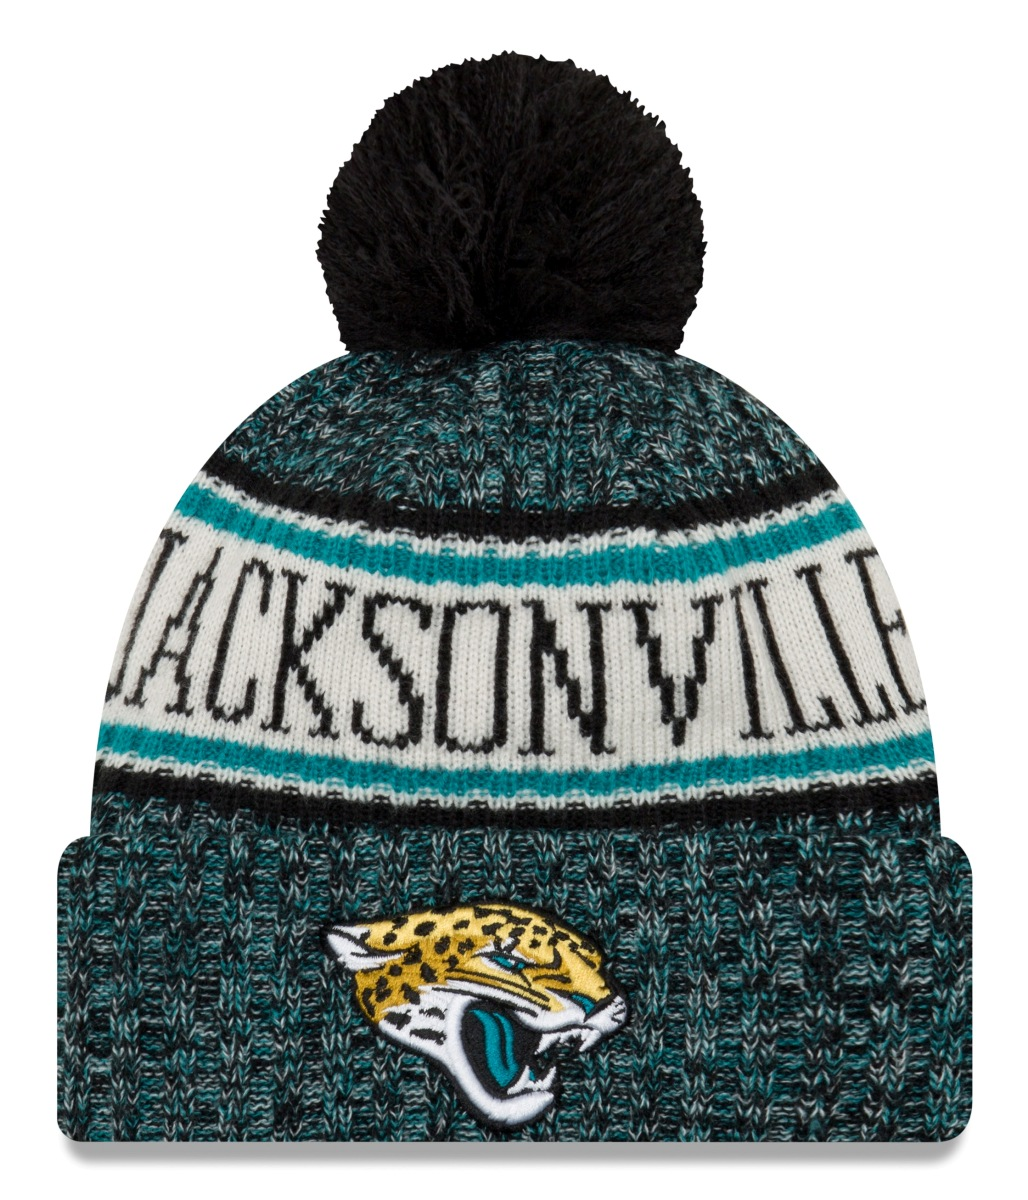 Jacksonville Jaguars New Era 2018 NFL Sideline On Field Sport Knit Hat - Black